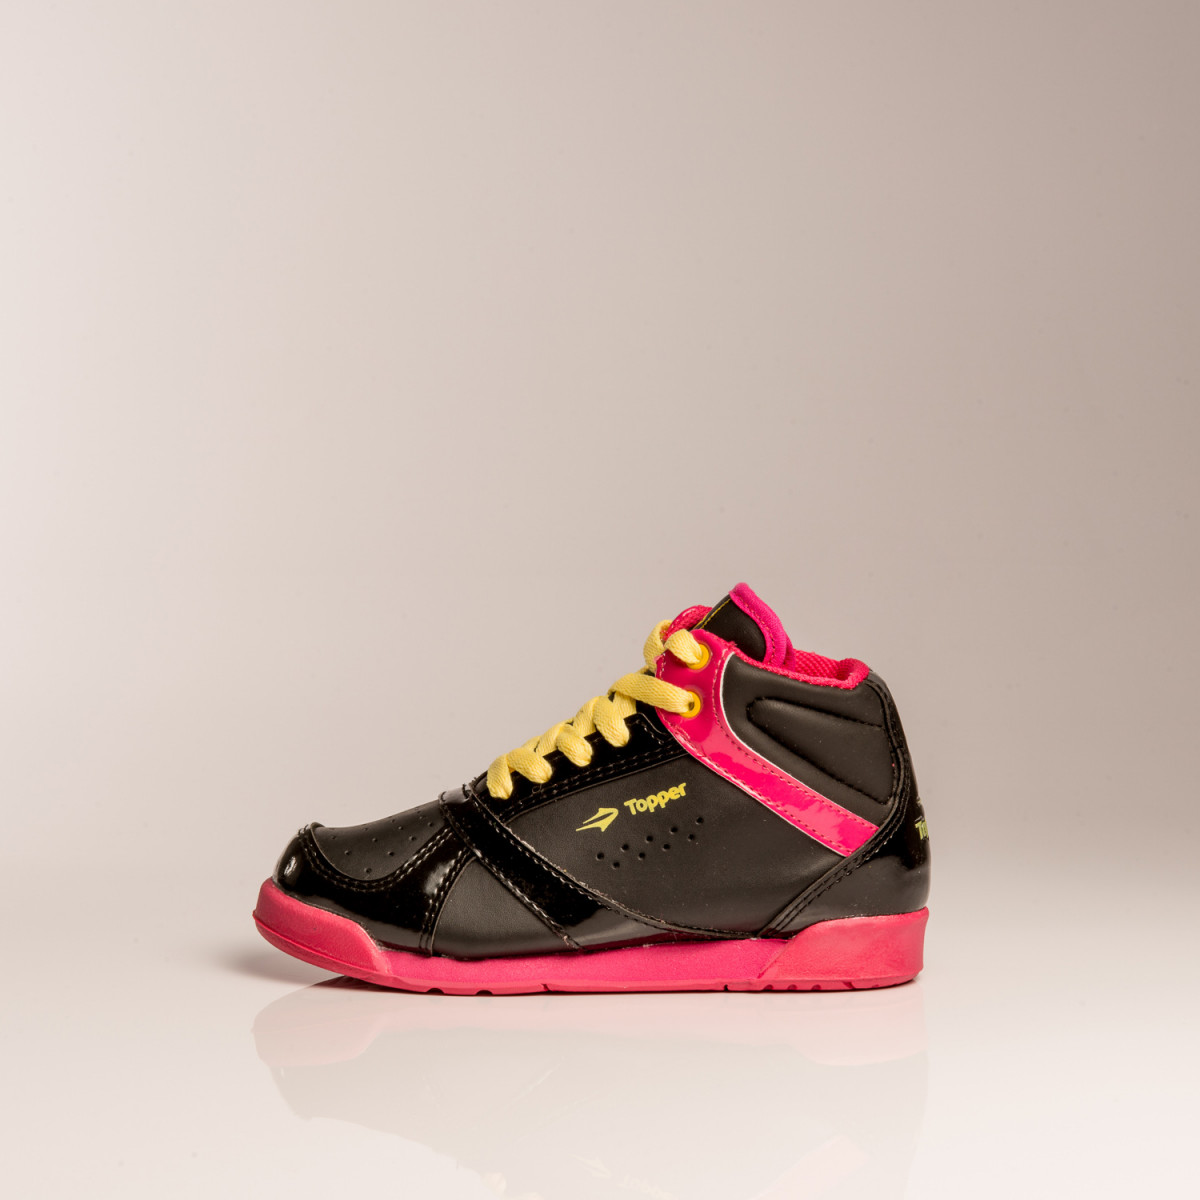 ZAPATILLAS TOPPER BEAT